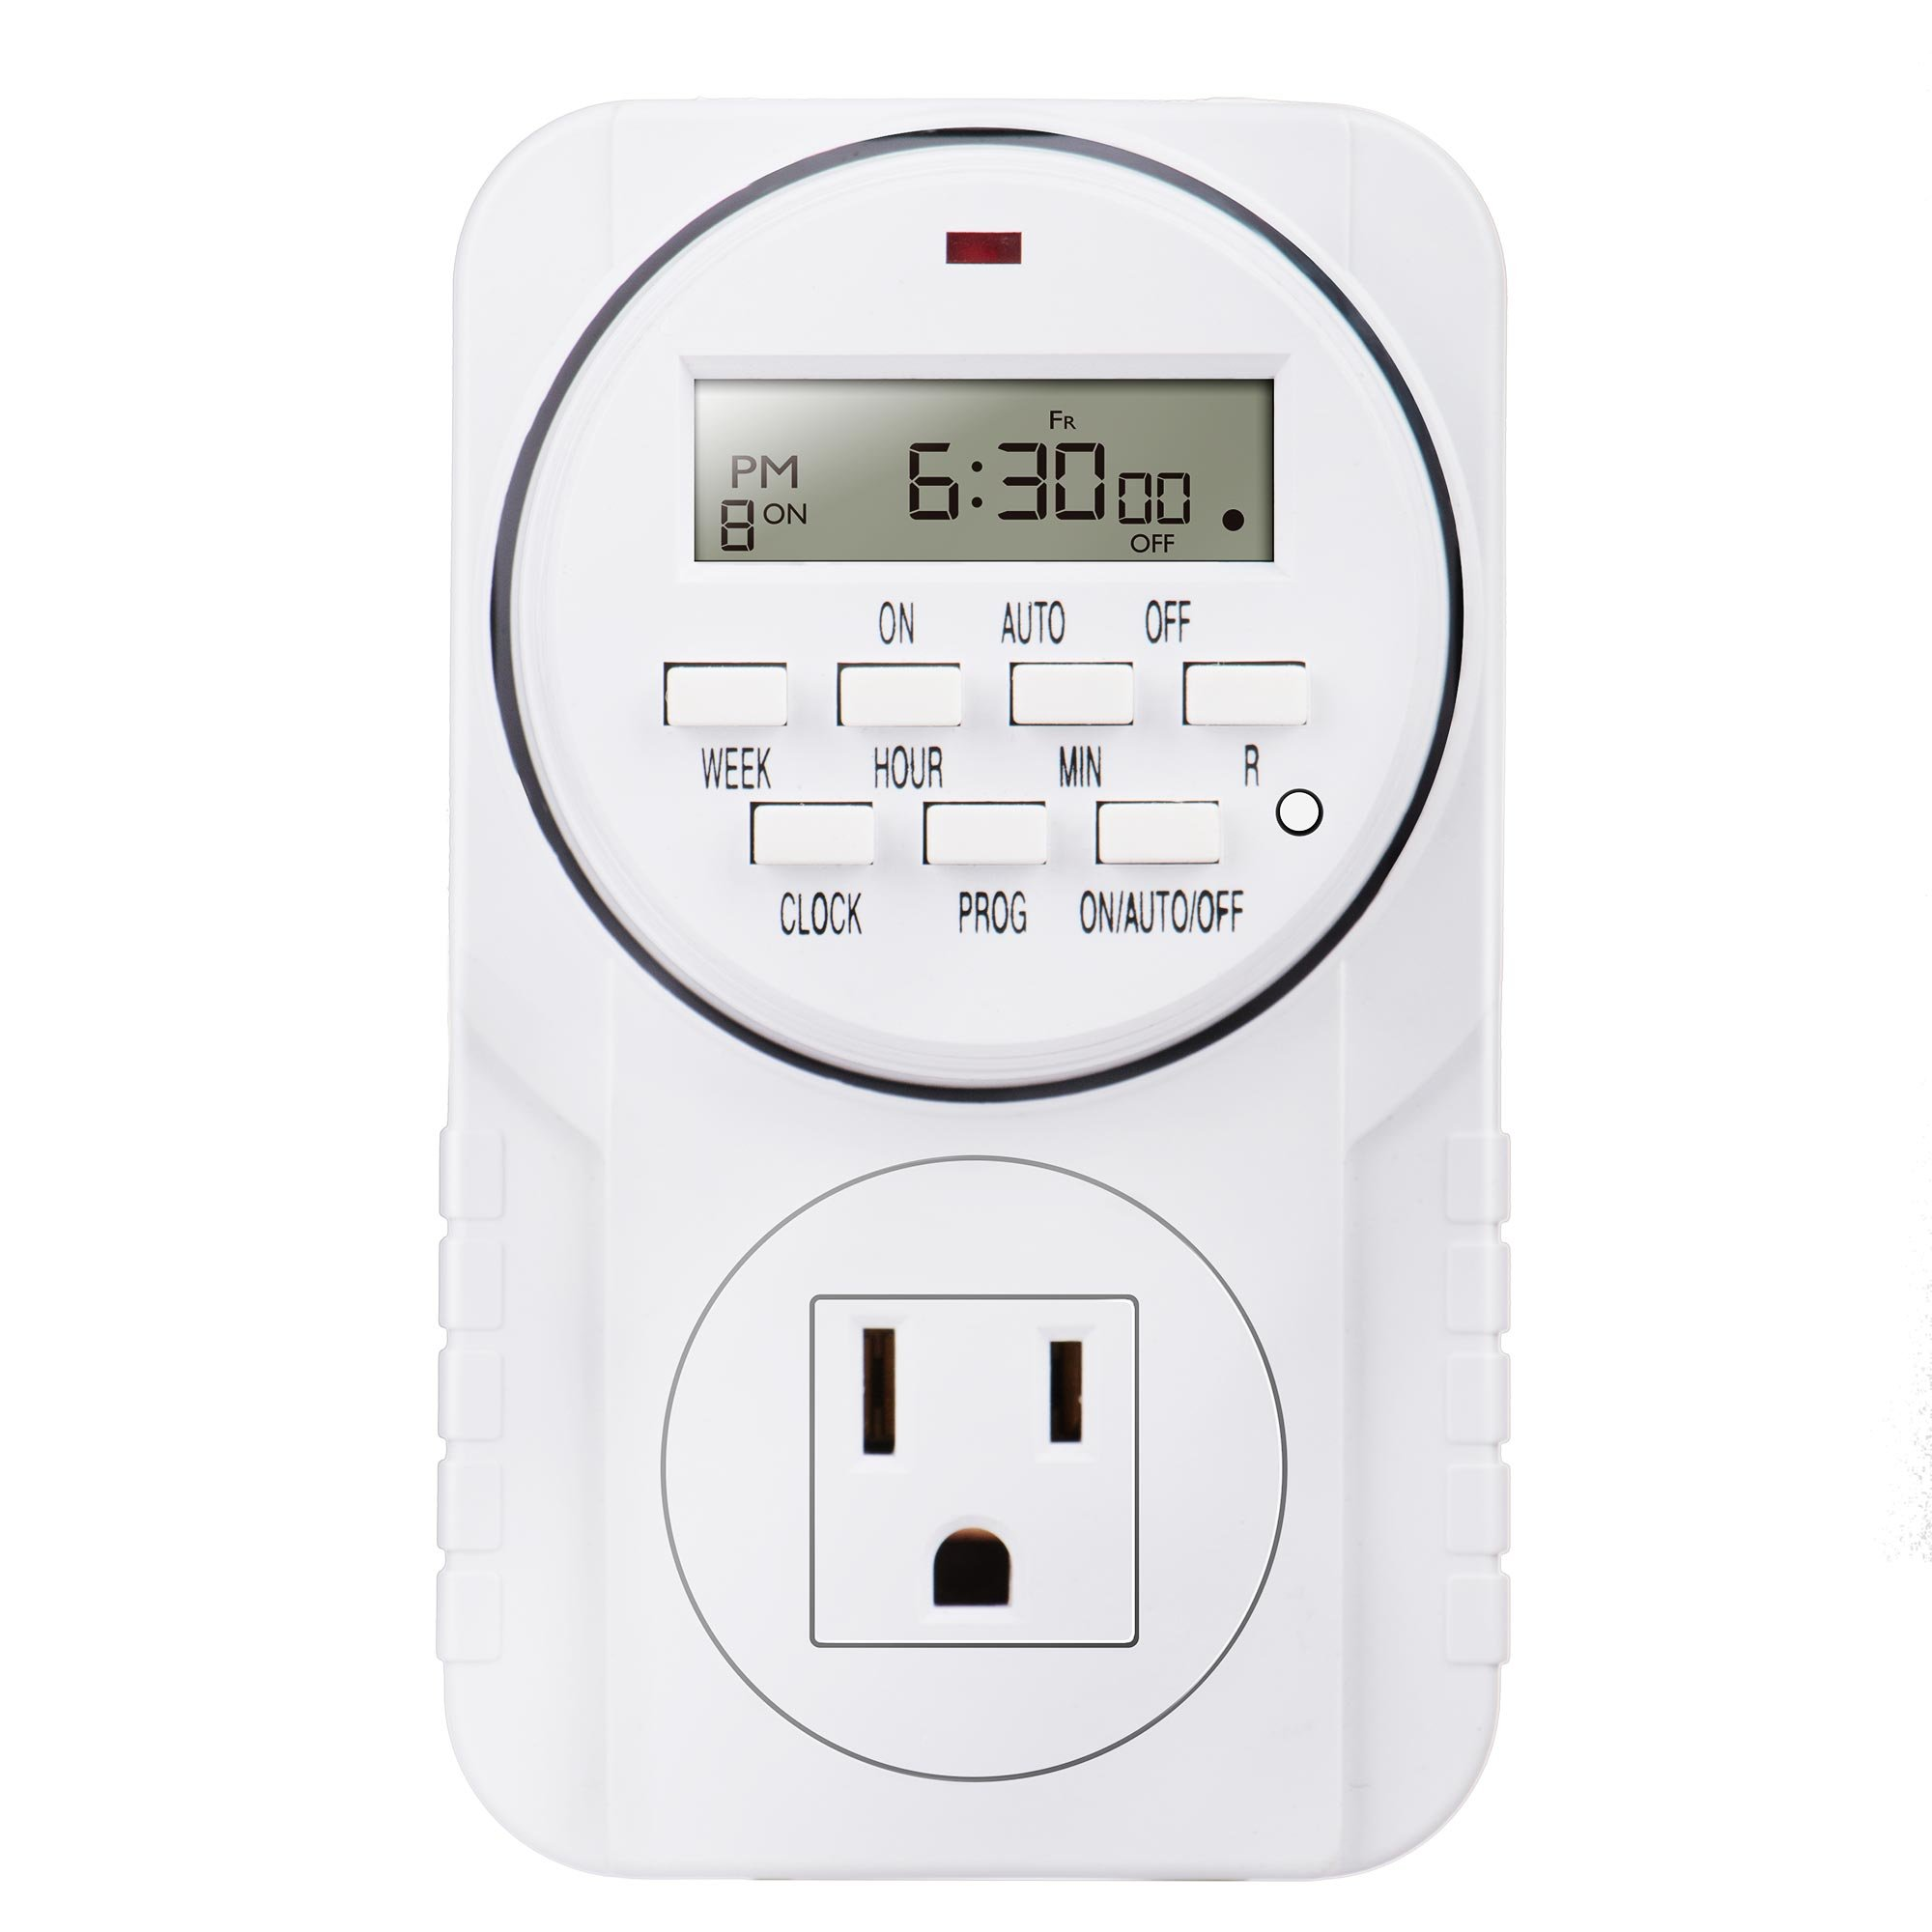 Heavy Duty 7 Day Smart Digital Programmable Outlet Timer with LCD Display for Lights Lamps, Set Up to 8 On/Off Programs for Plug In Electrical Outlets